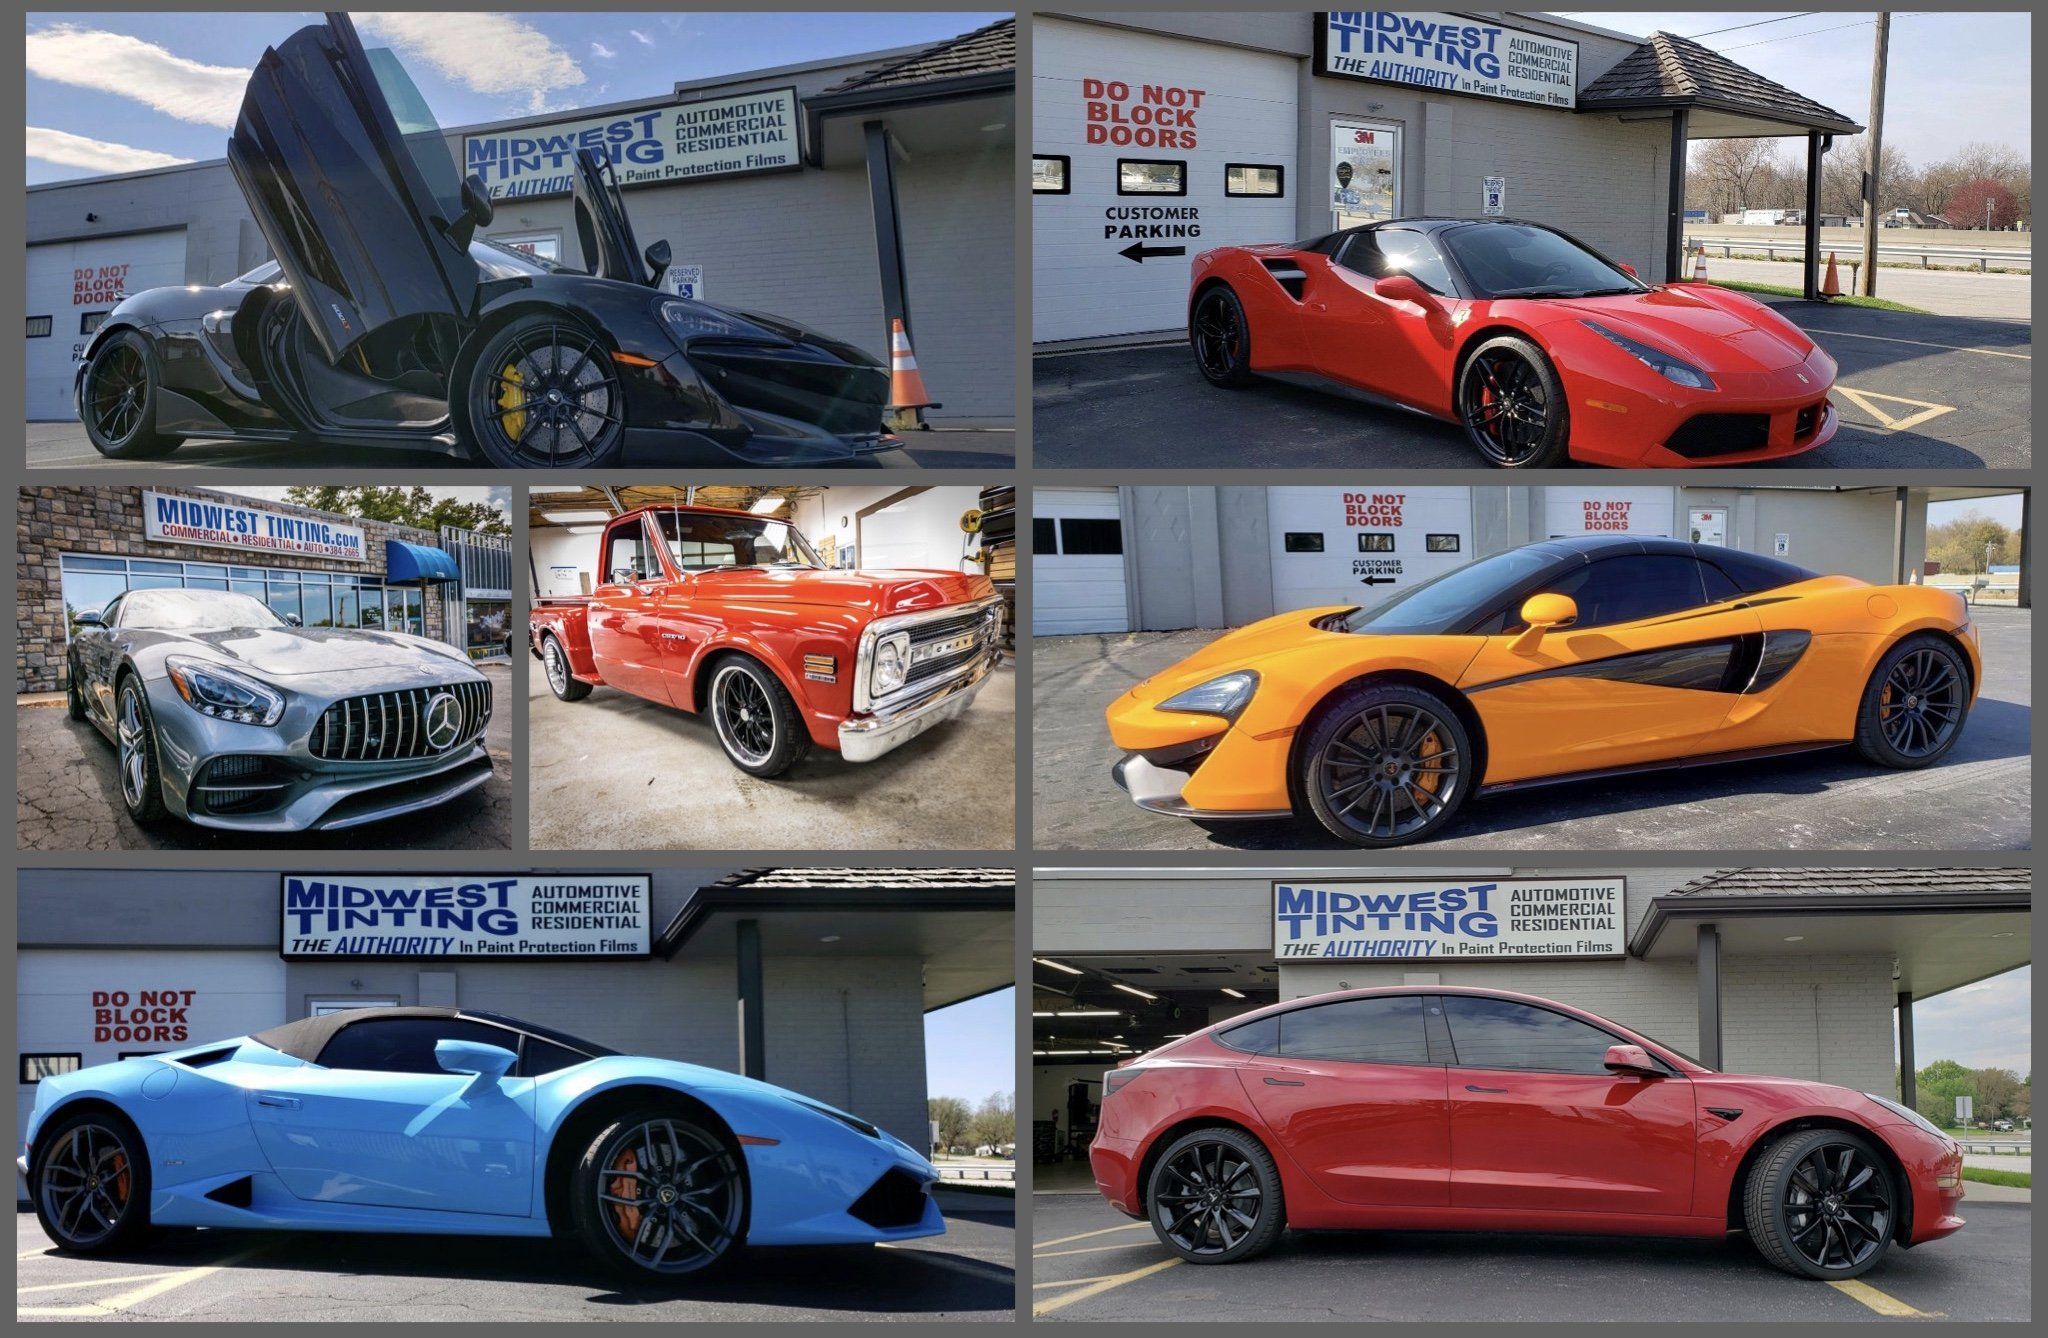 The Top Midwest Tinting Automotive Projects in Kansas City in 2019